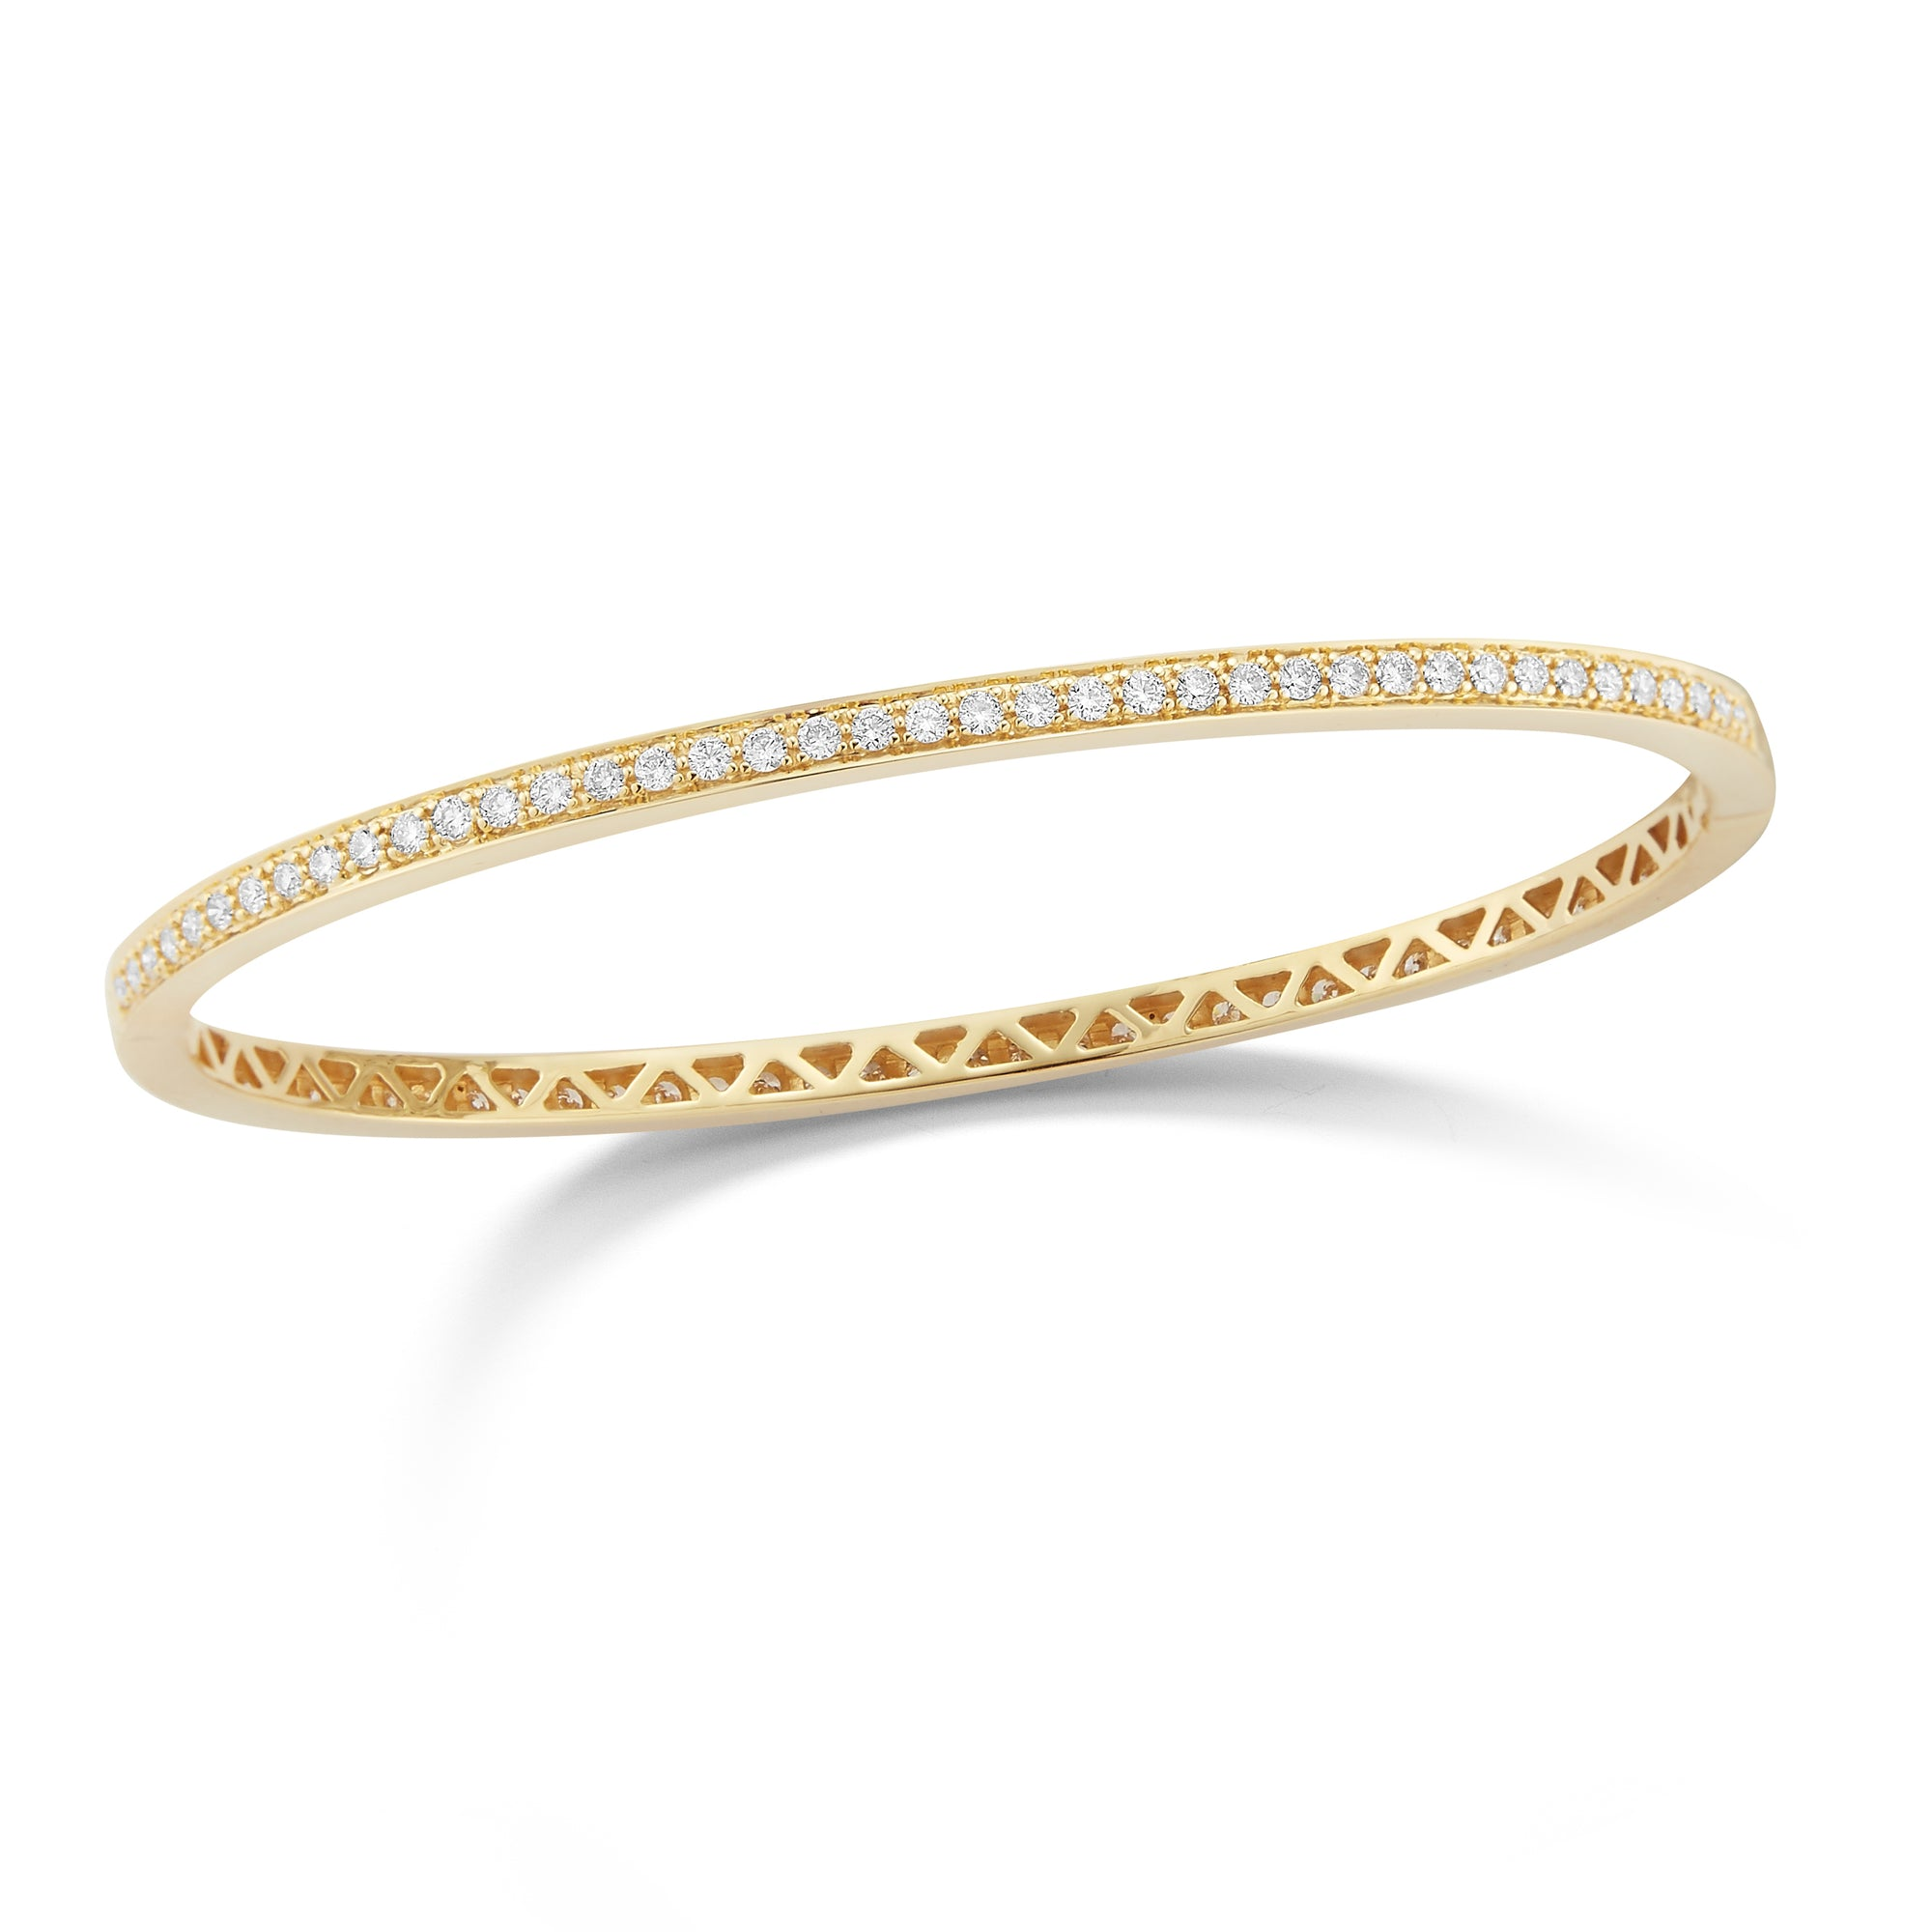 Pave Diamond Eternity Bangle Bracelet